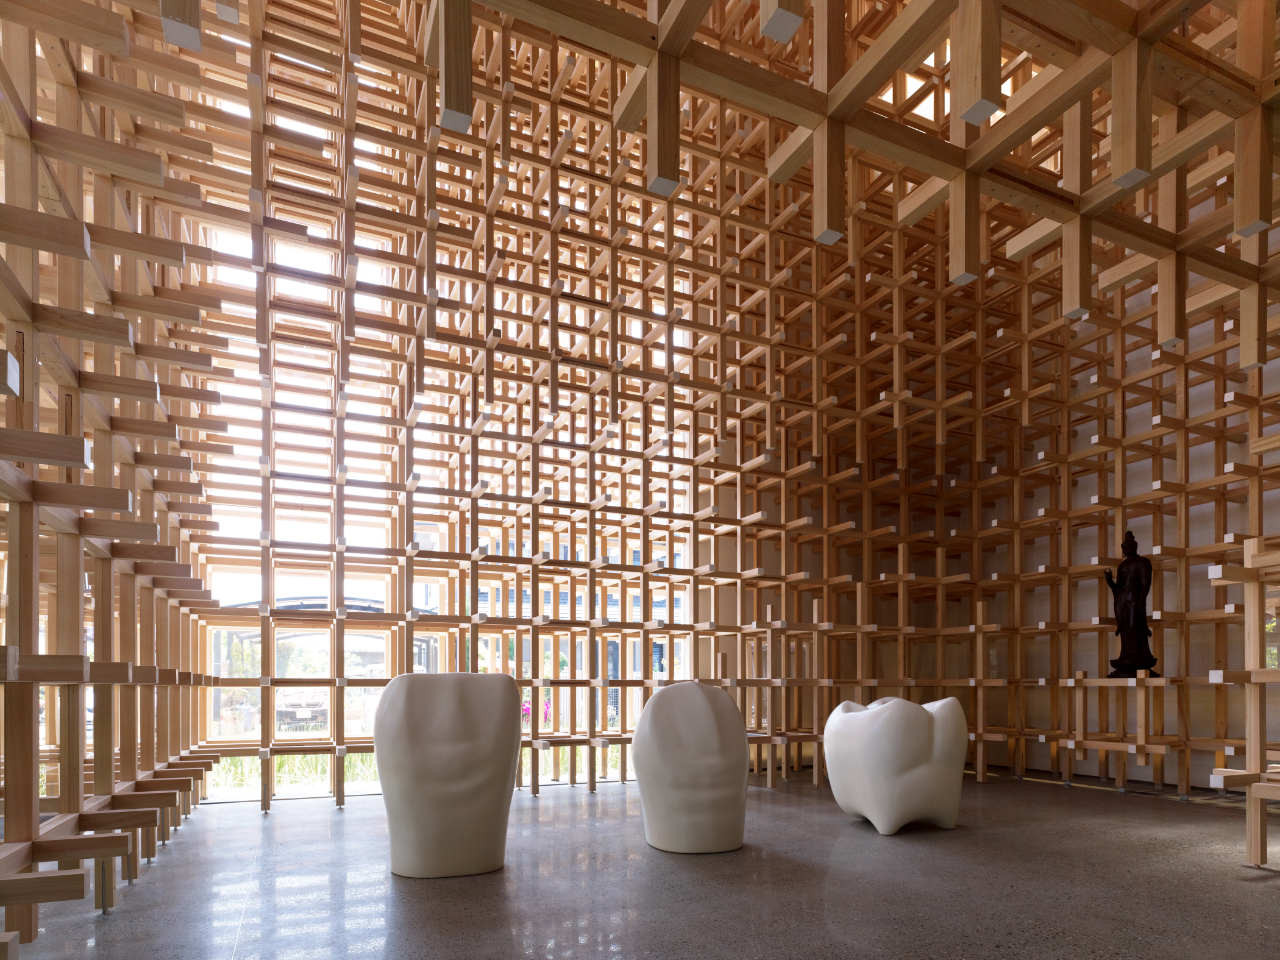 GC PROSTHO MUSEUM RESEARCH CENTER (Tokyo, Giappone, 2012) Arch. Kengo Kuma